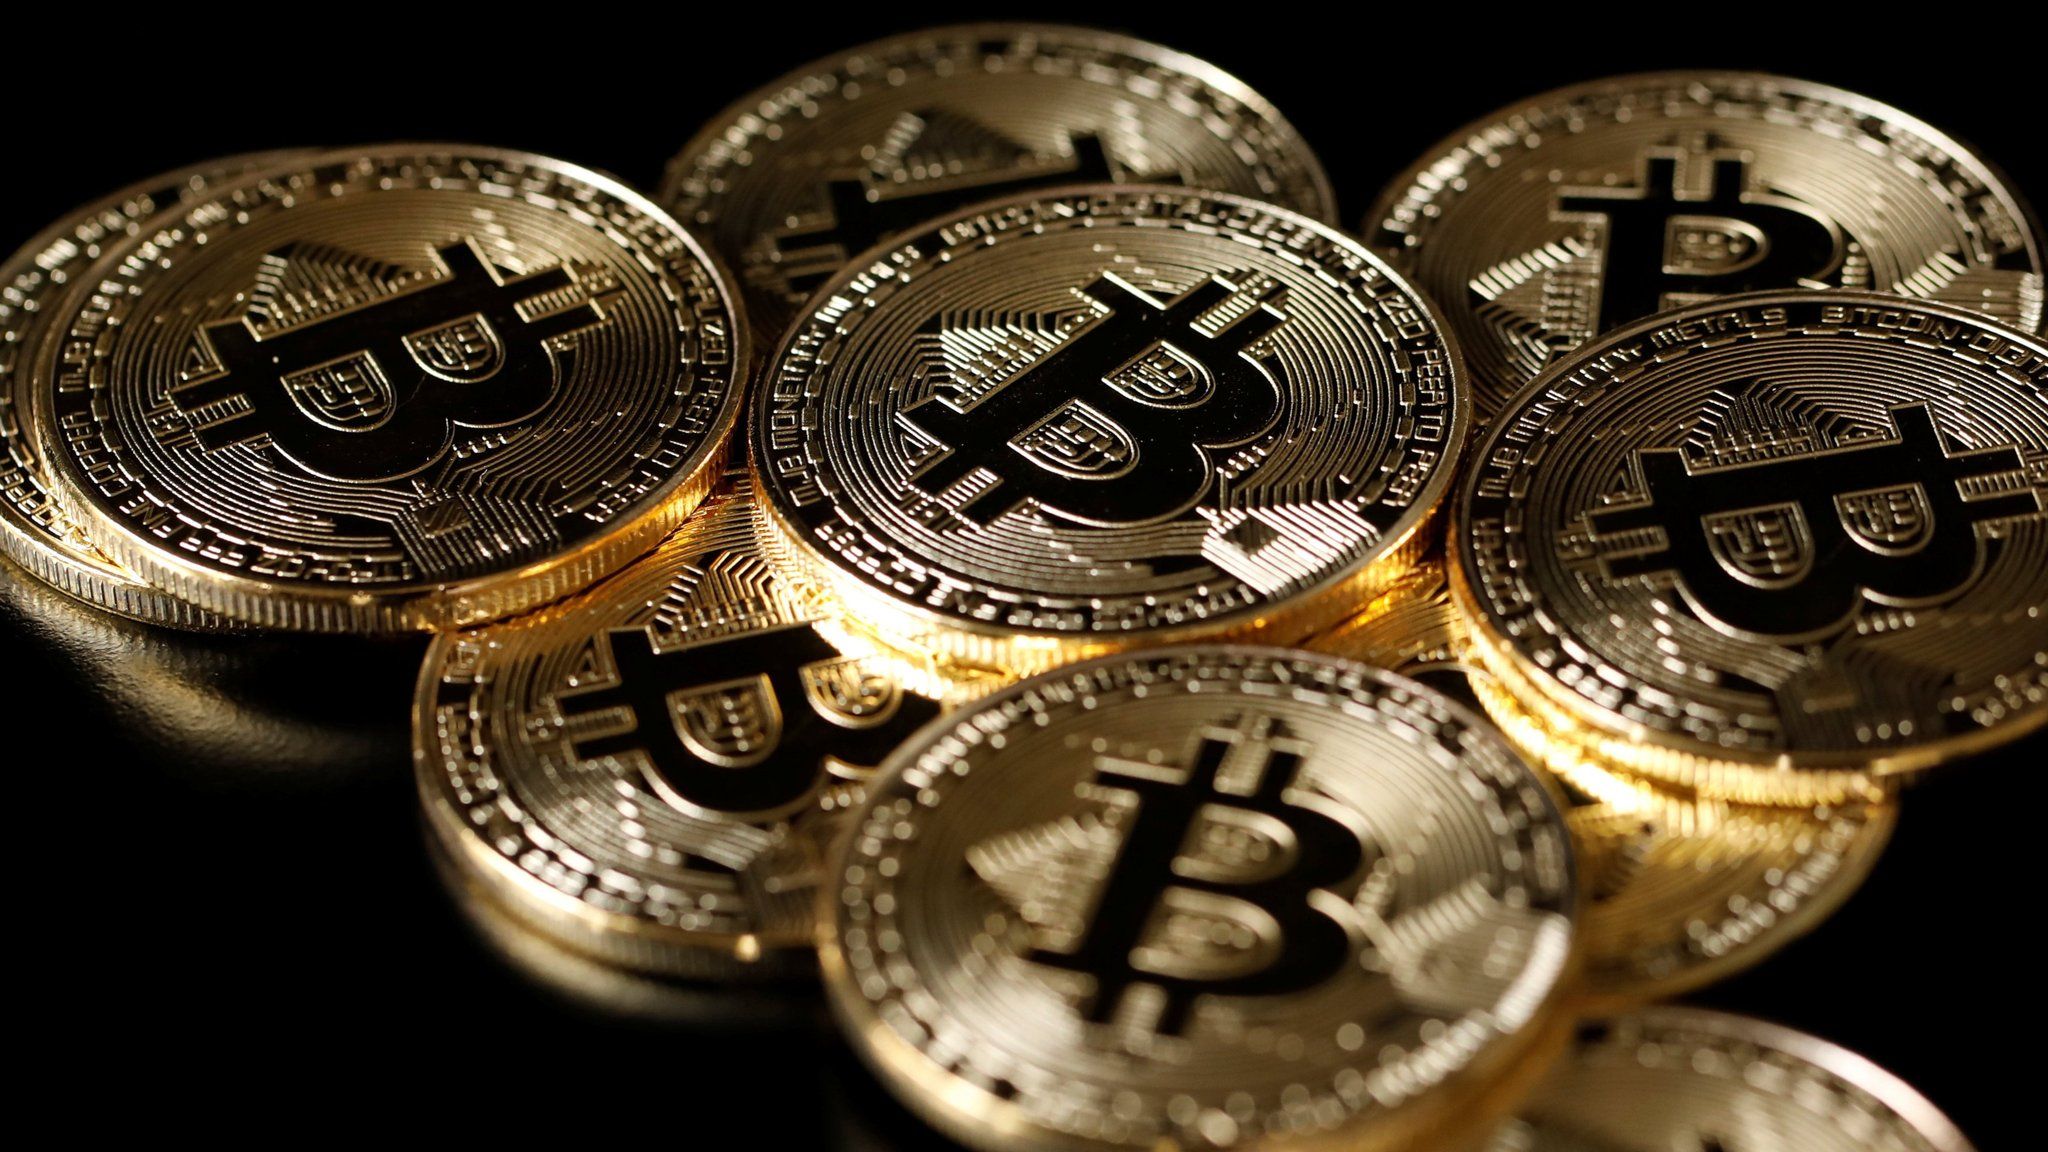 US regulators vow to be on guard for bitcoin risks